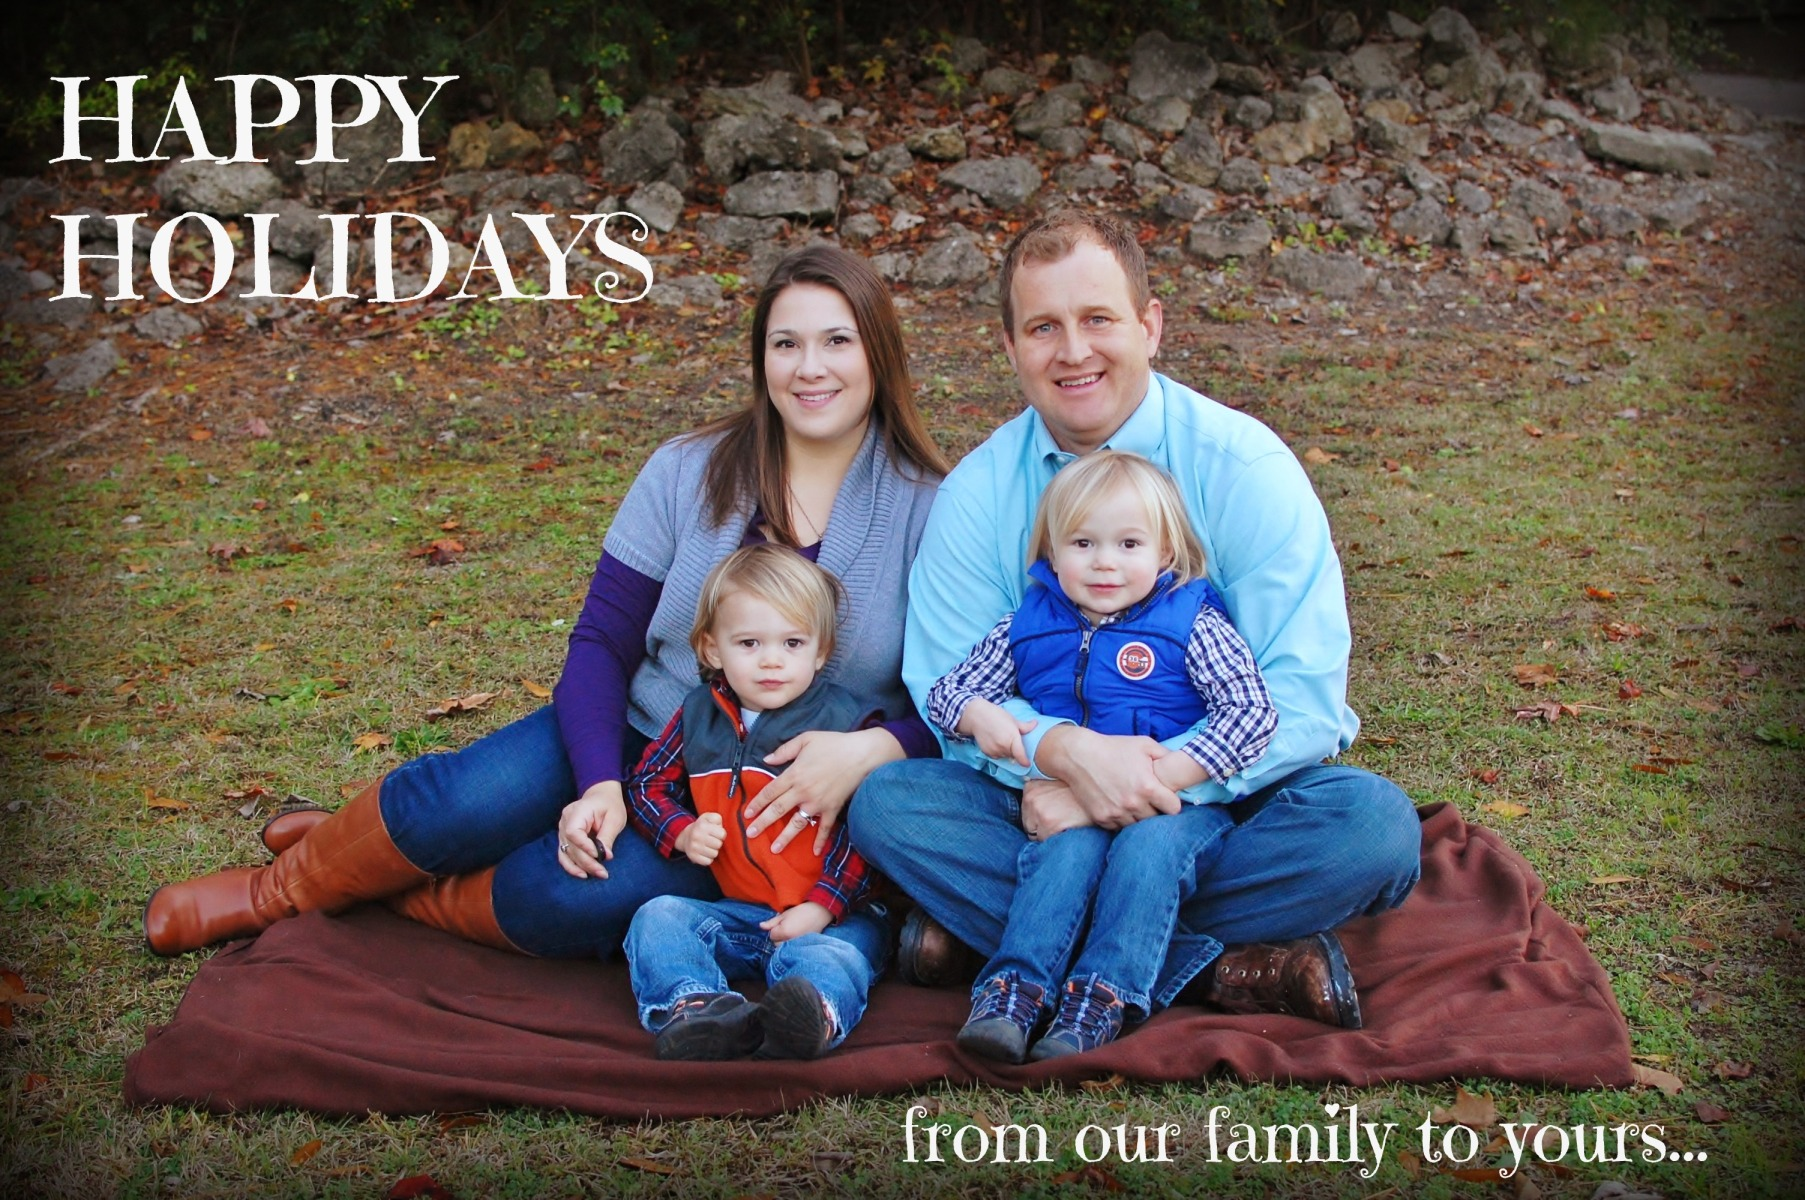 Best wishes for a wonderful holiday season!!